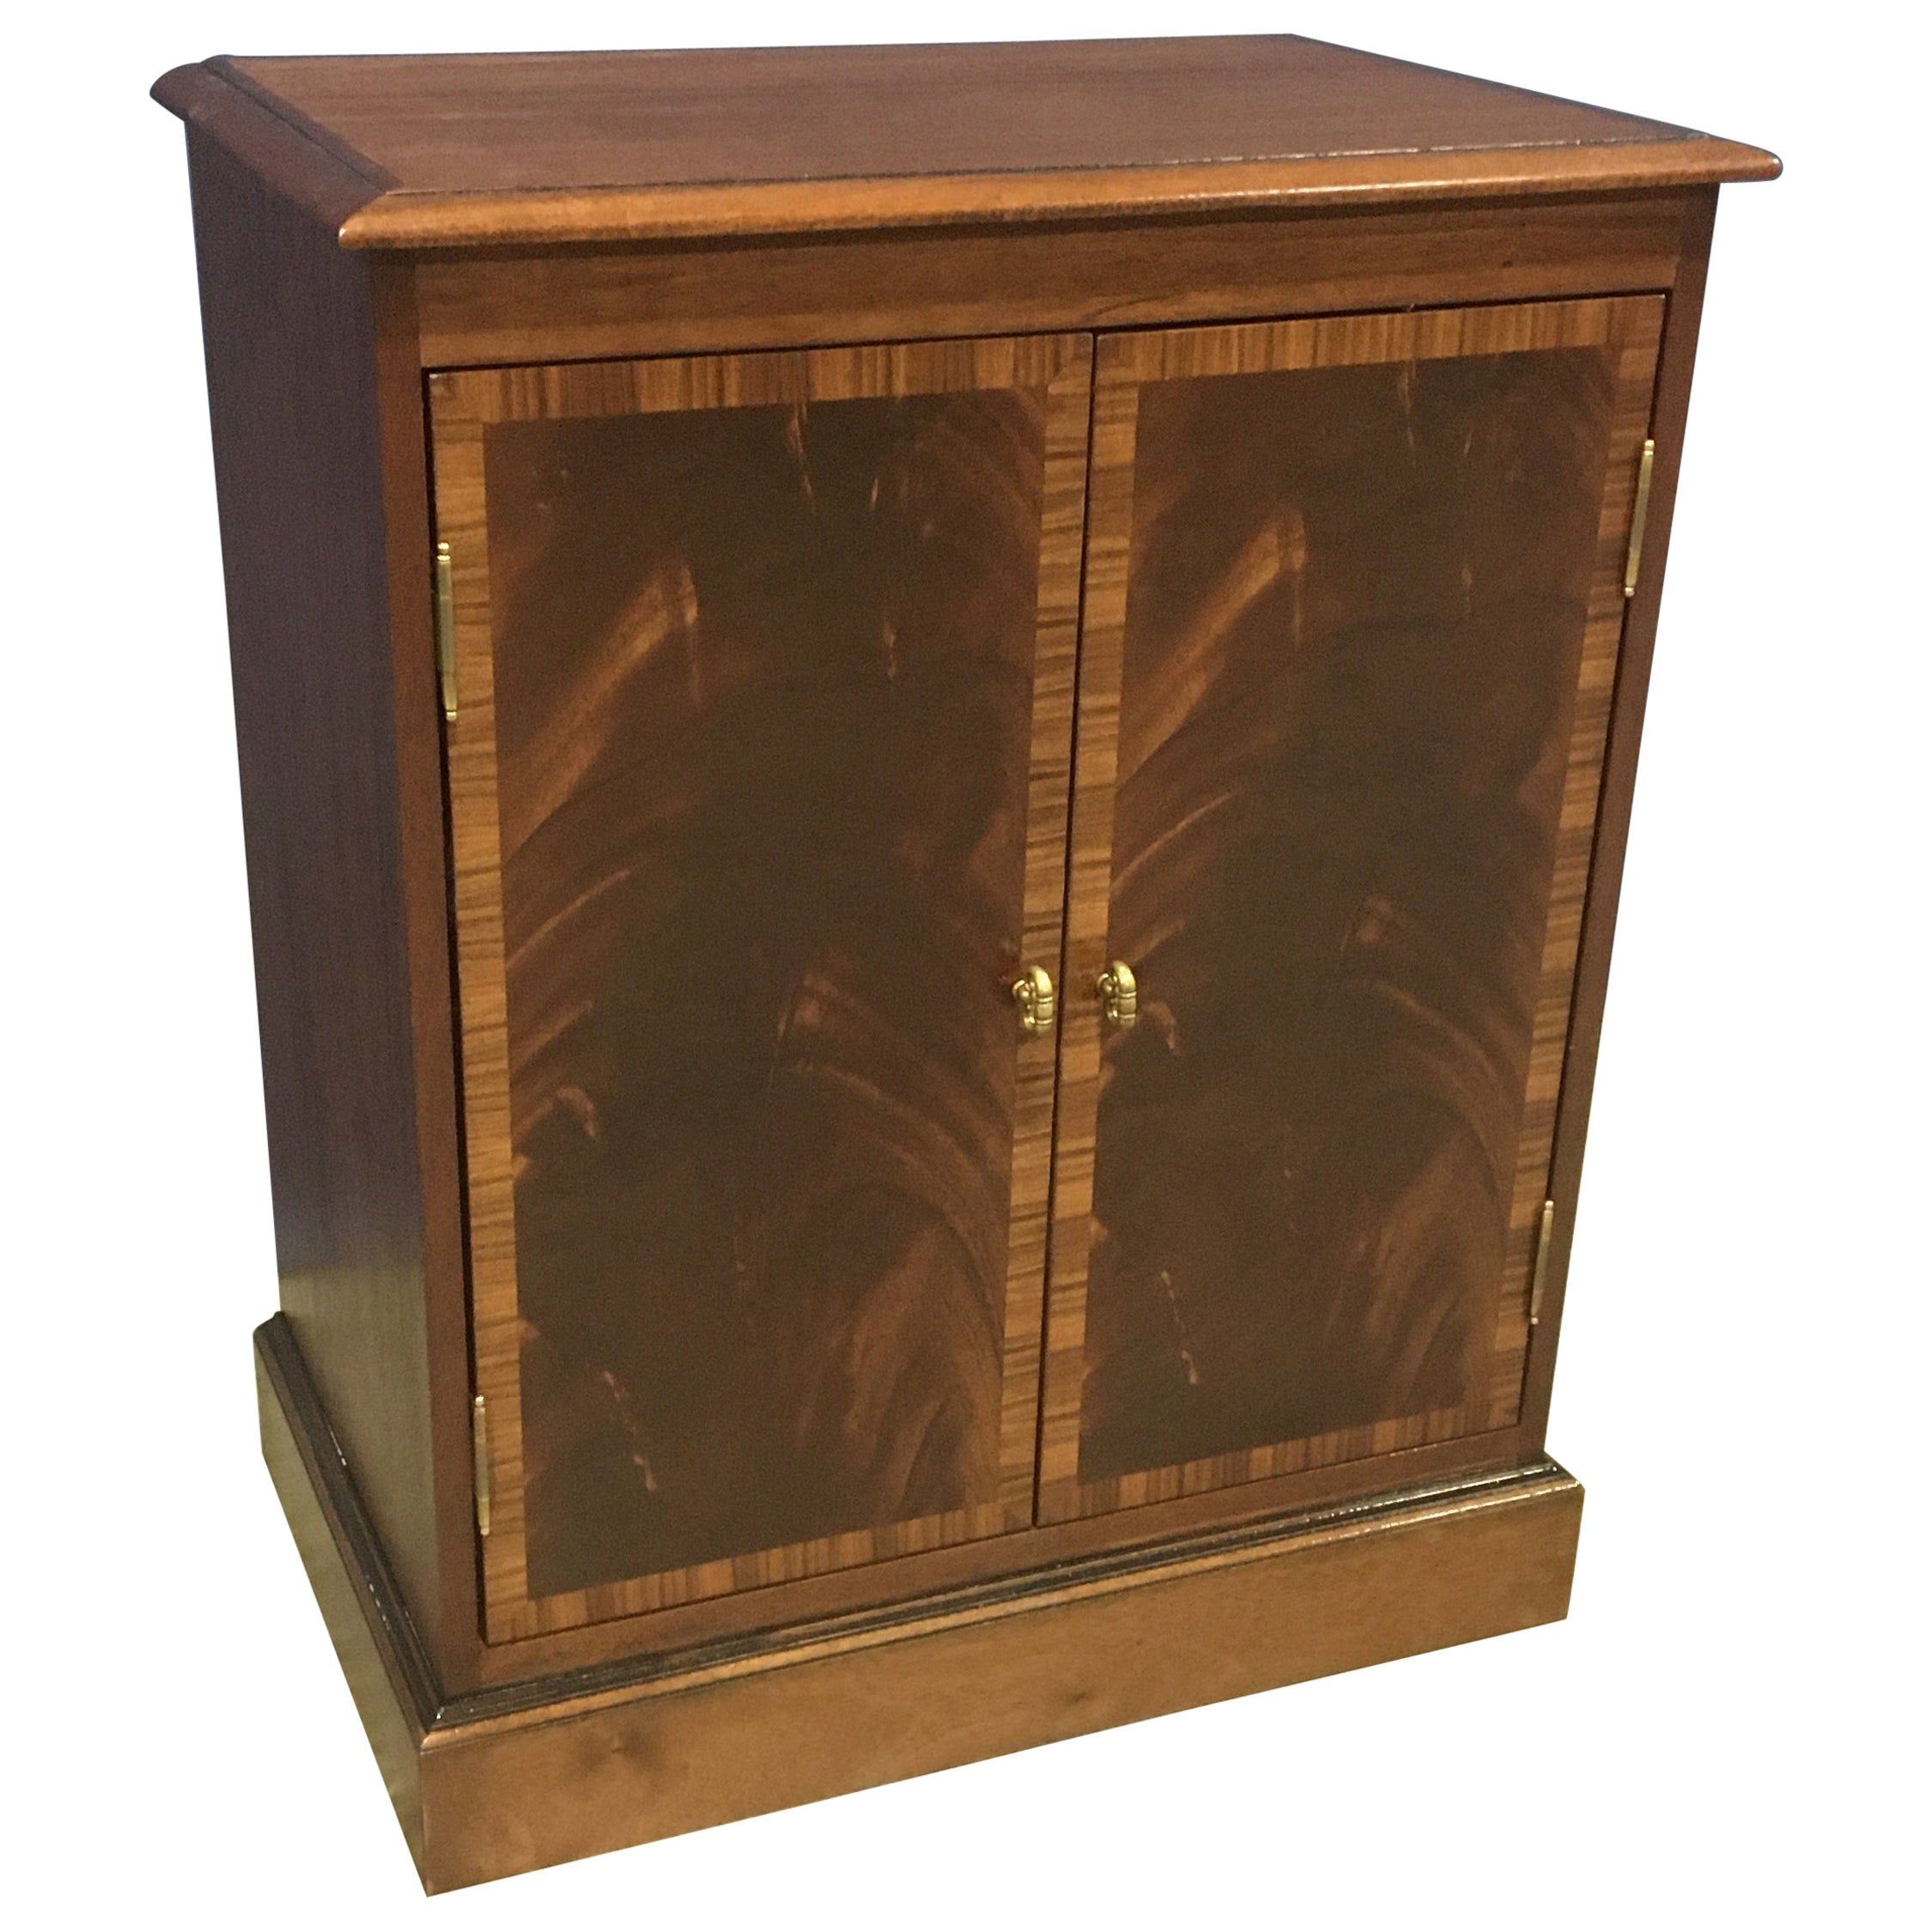 Mahogany Georgian Style Two-Door Cabinet by Leighton Hall